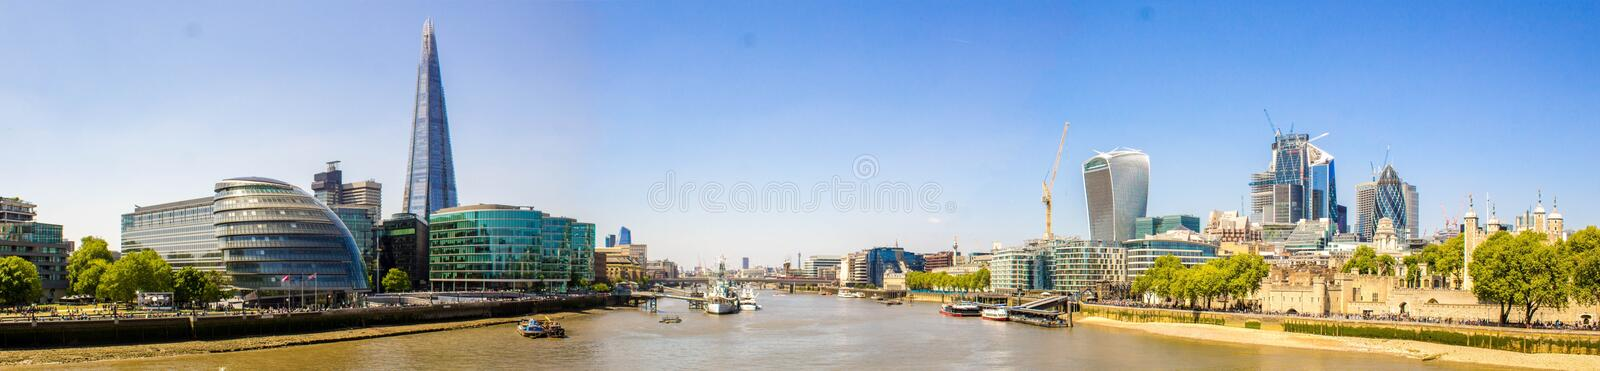 River Thames View royalty free stock photos